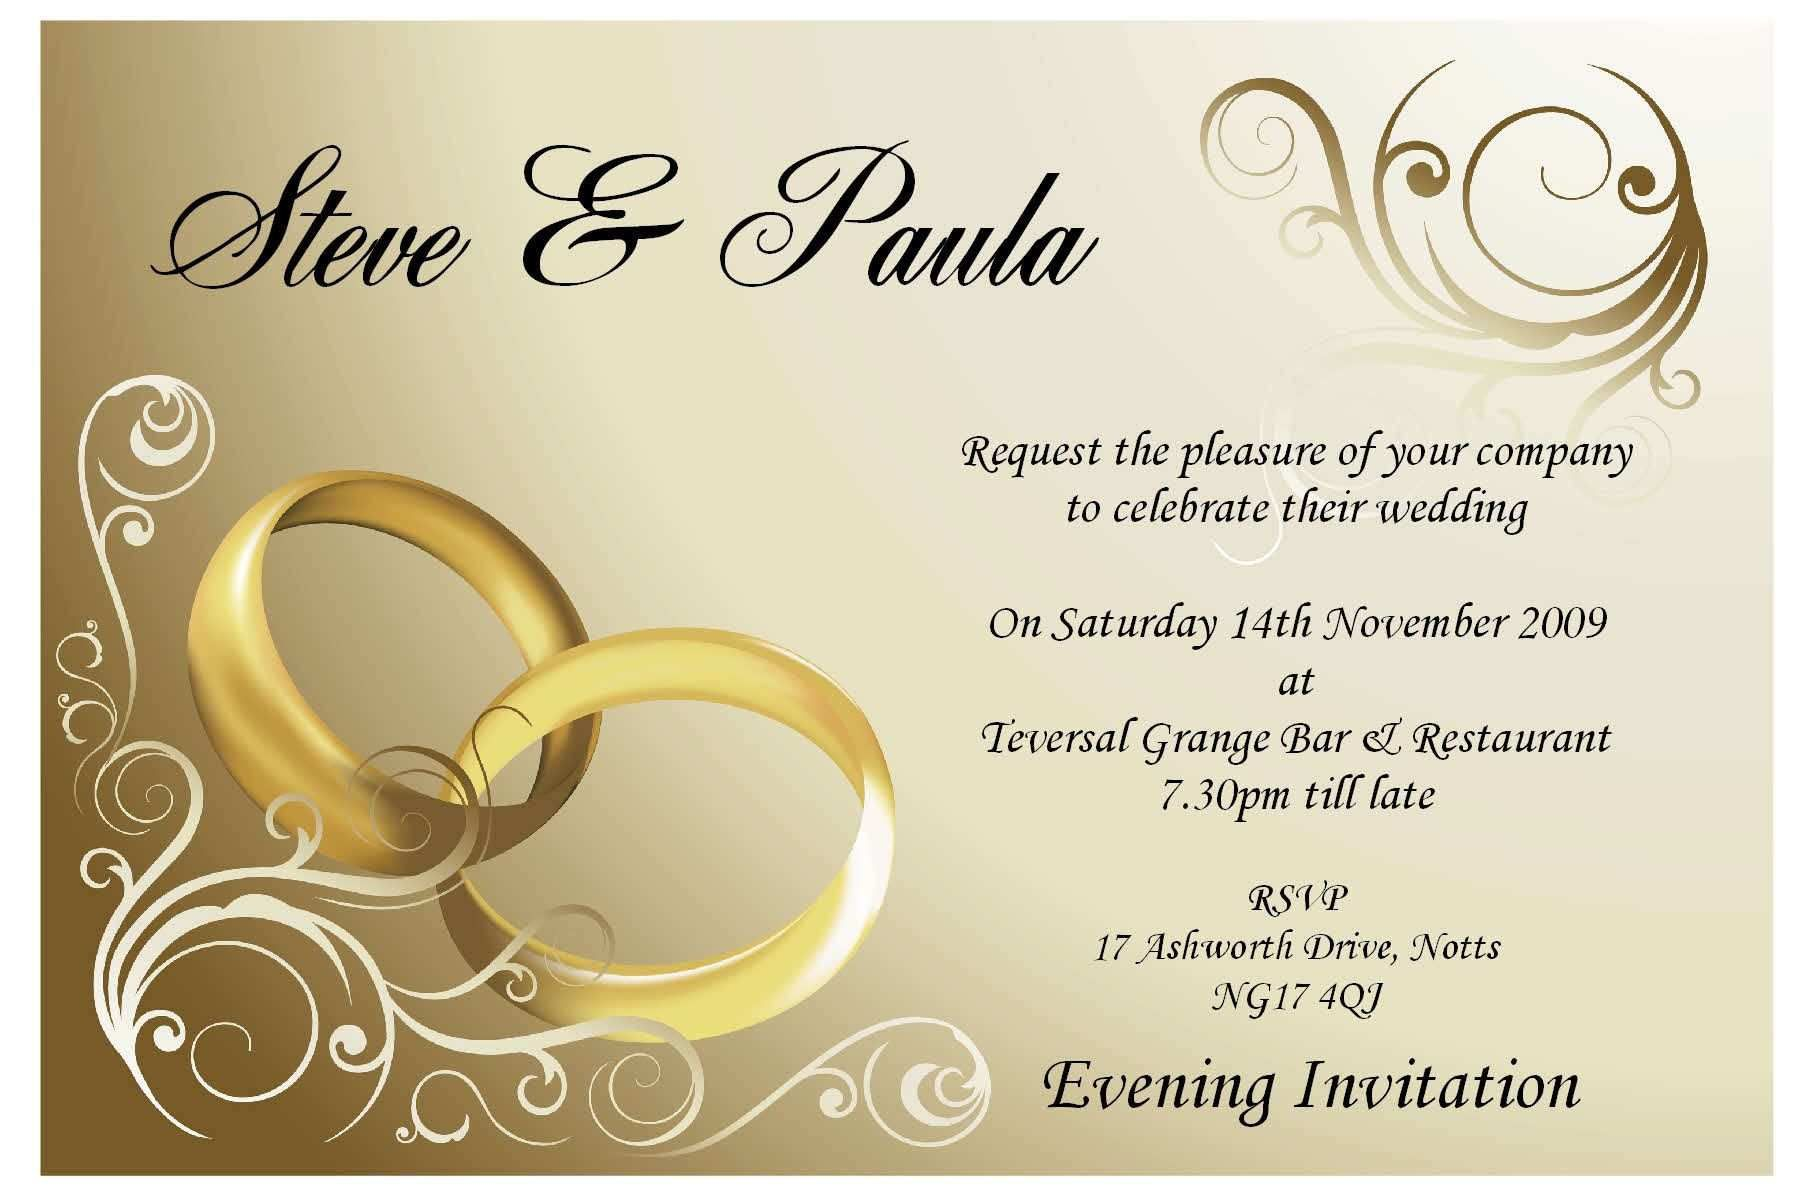 003 Fantastic Free Online Indian Wedding Invitation Card Template Highest Clarity Full